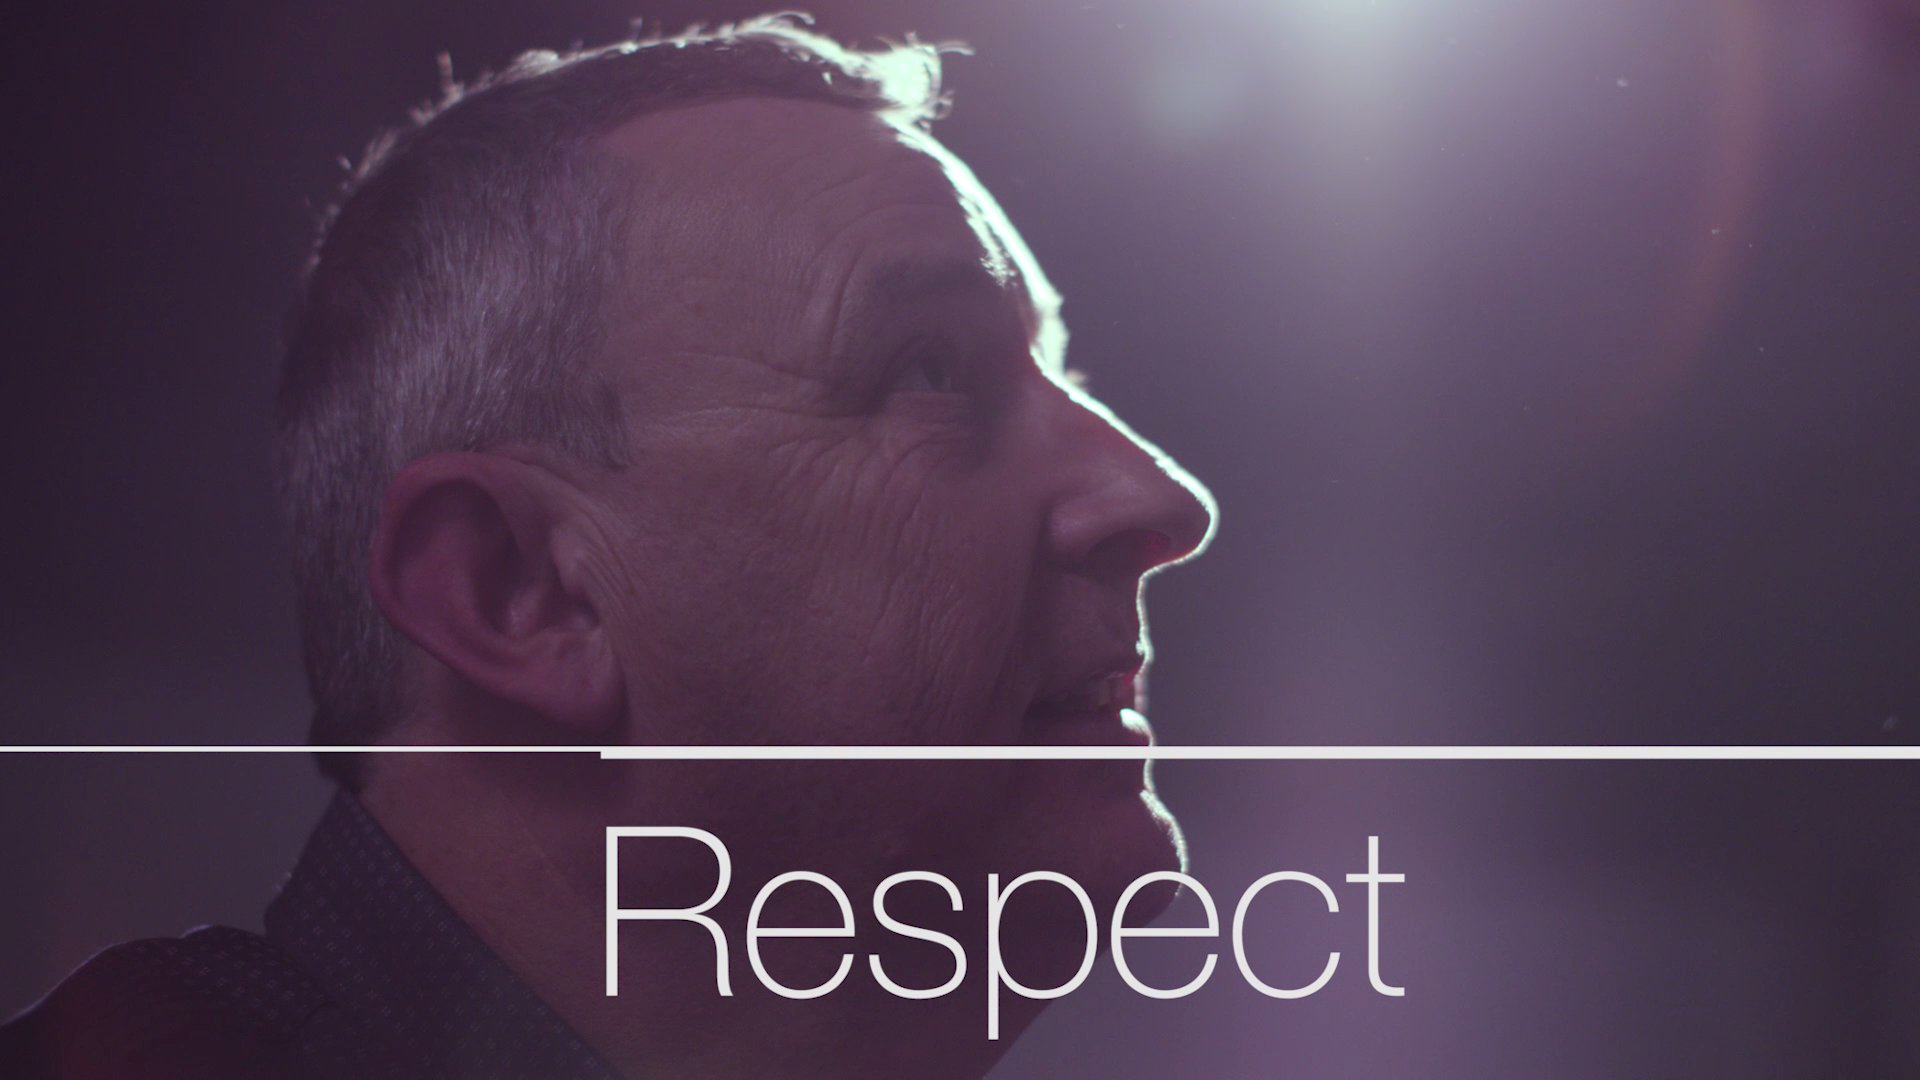 Values - Respect